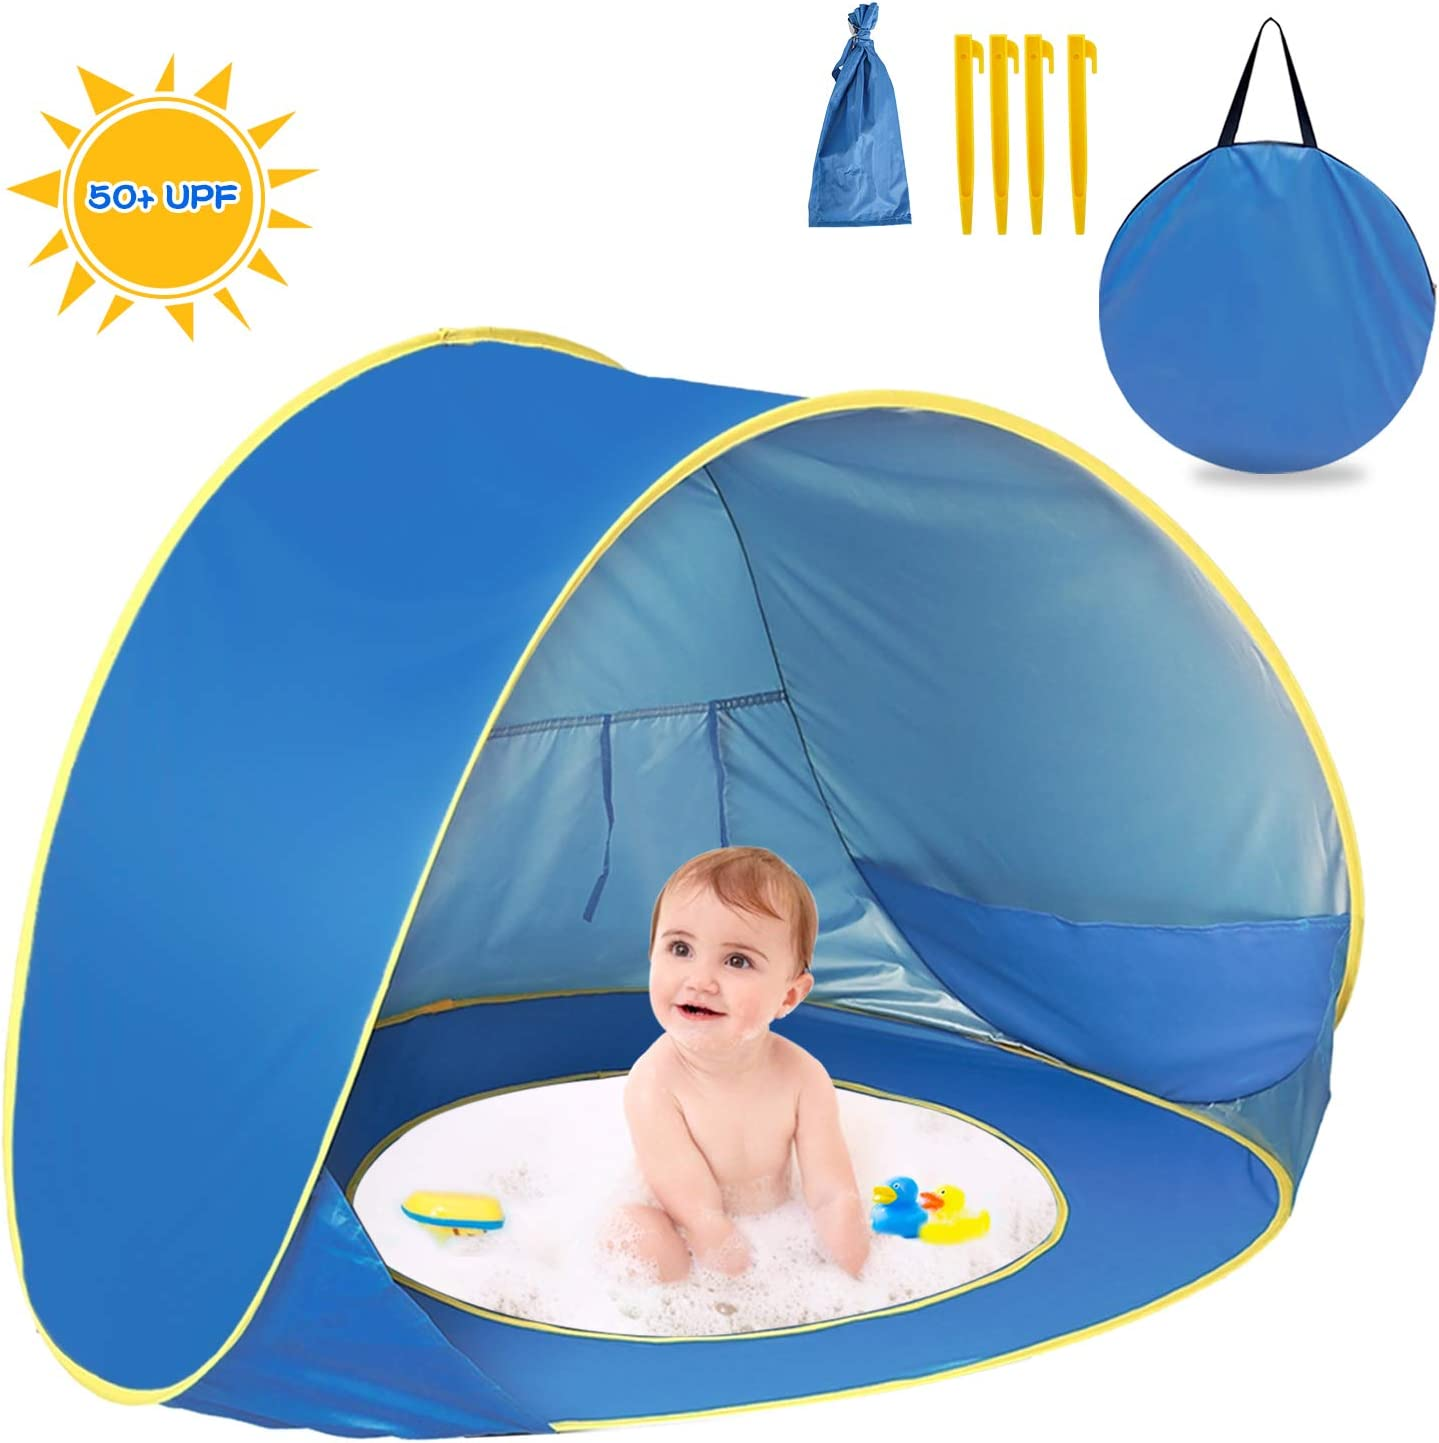 Pop Up Baby Beach Tent,UPF 50+ Beach Camping Tent Anti UV for 2 3 Kids Foldable Waterproof tent Portable Sun Shelter Indoor and Outdoor Beach Picnic